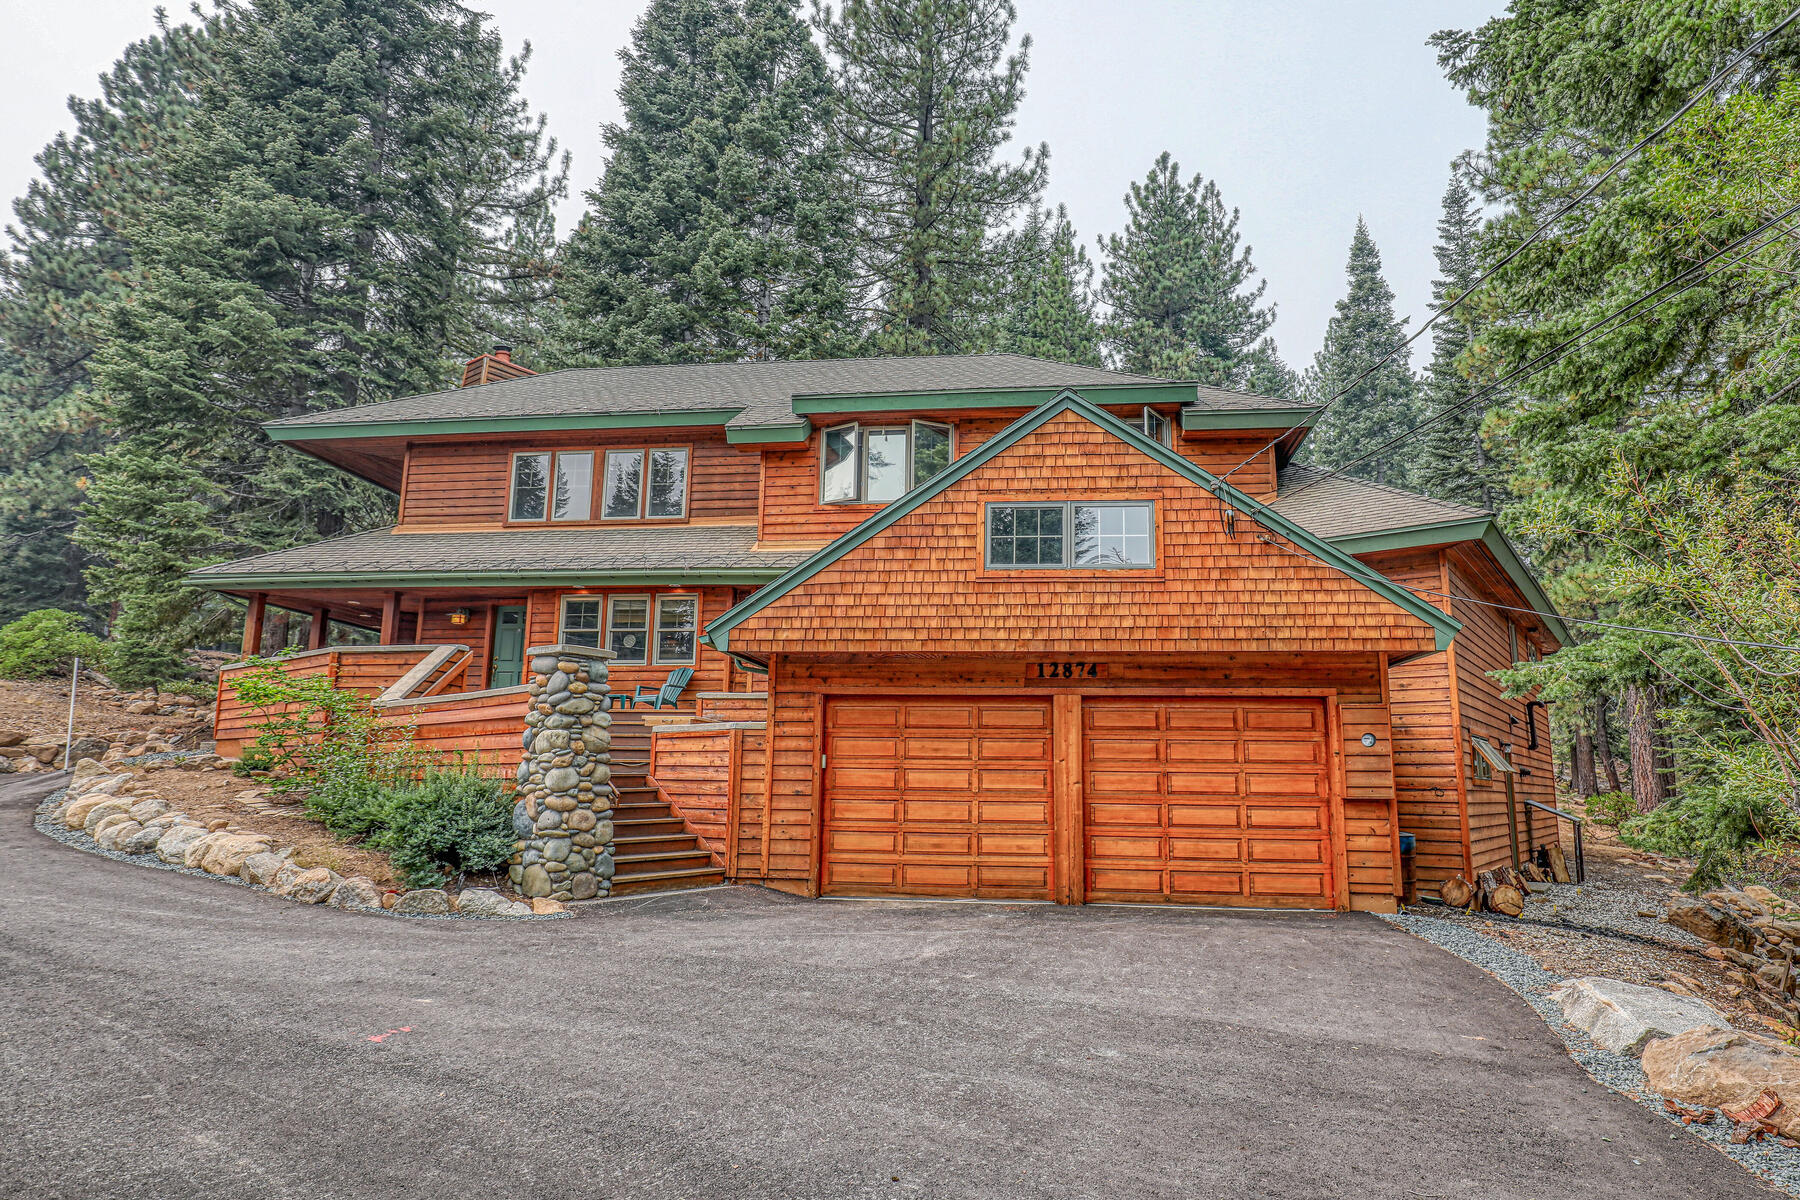 Single Family Homes for Active at Desirable Neighborhood In Tahoe Donner 12874 Roundhill Drive Truckee, California 96161 United States